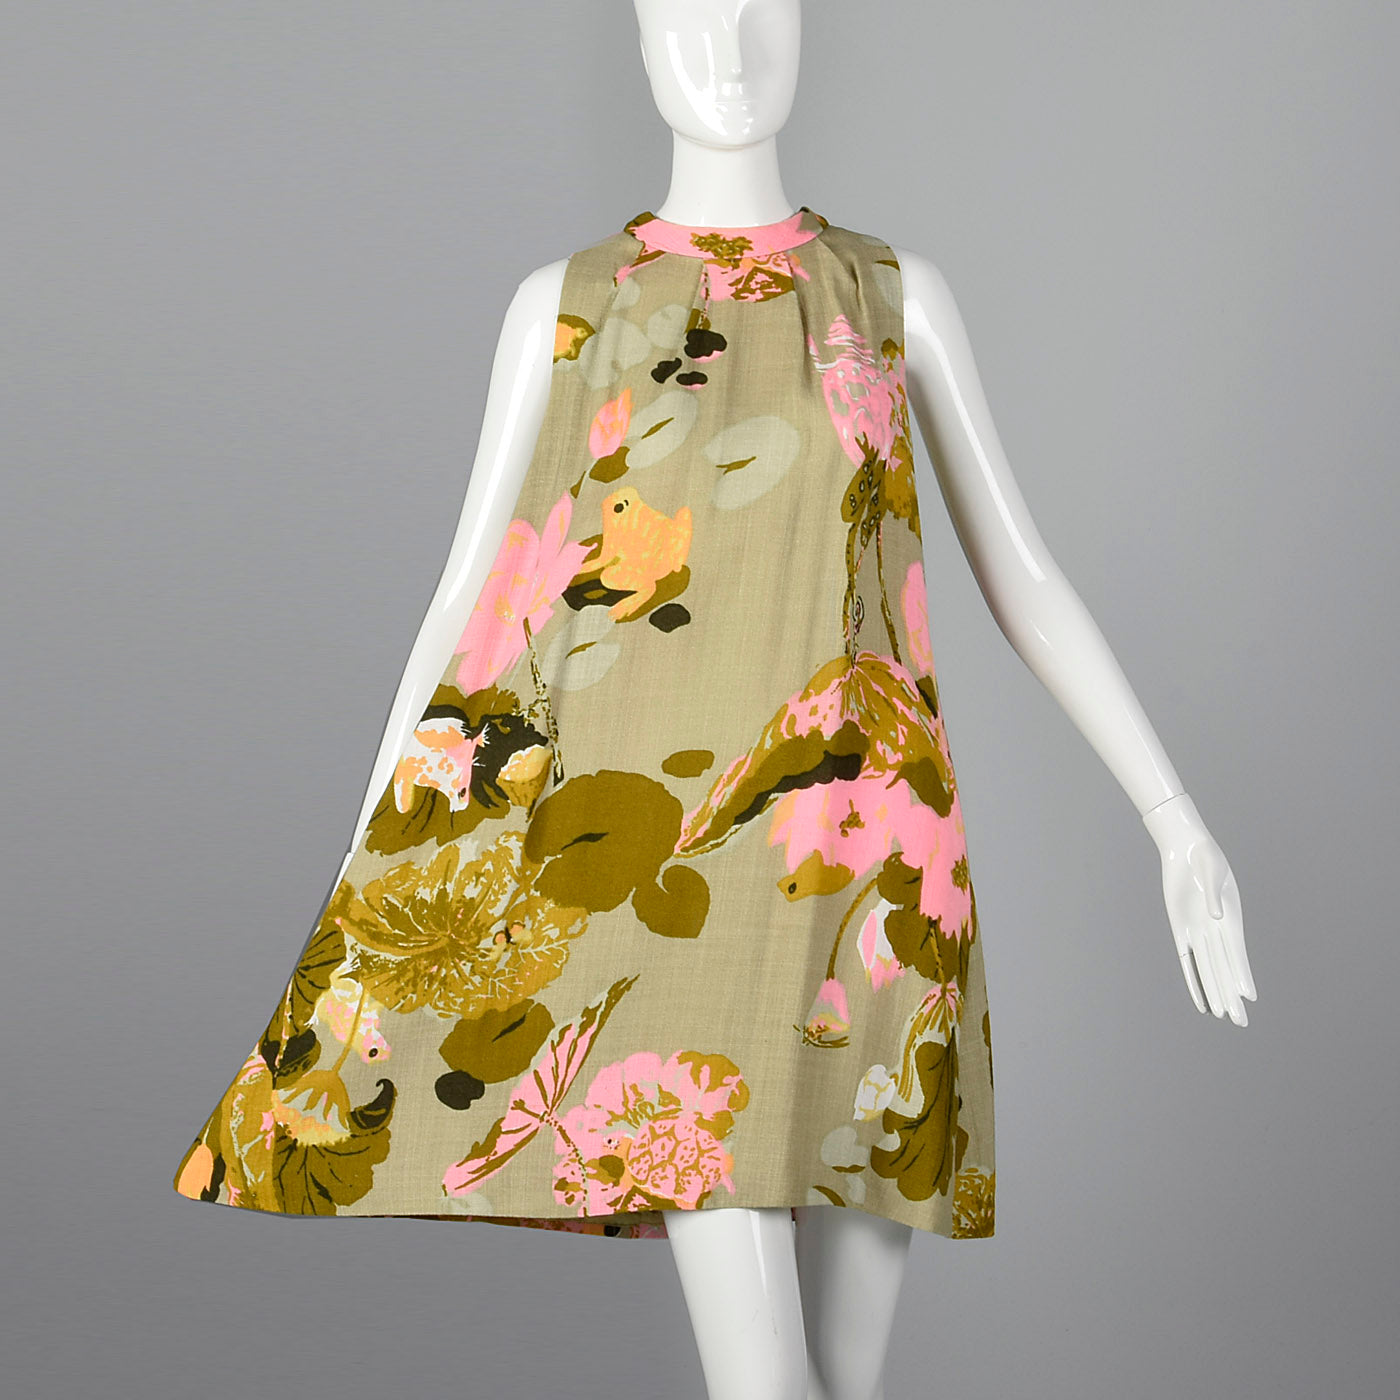 1960s Novelty Frog Print Dress